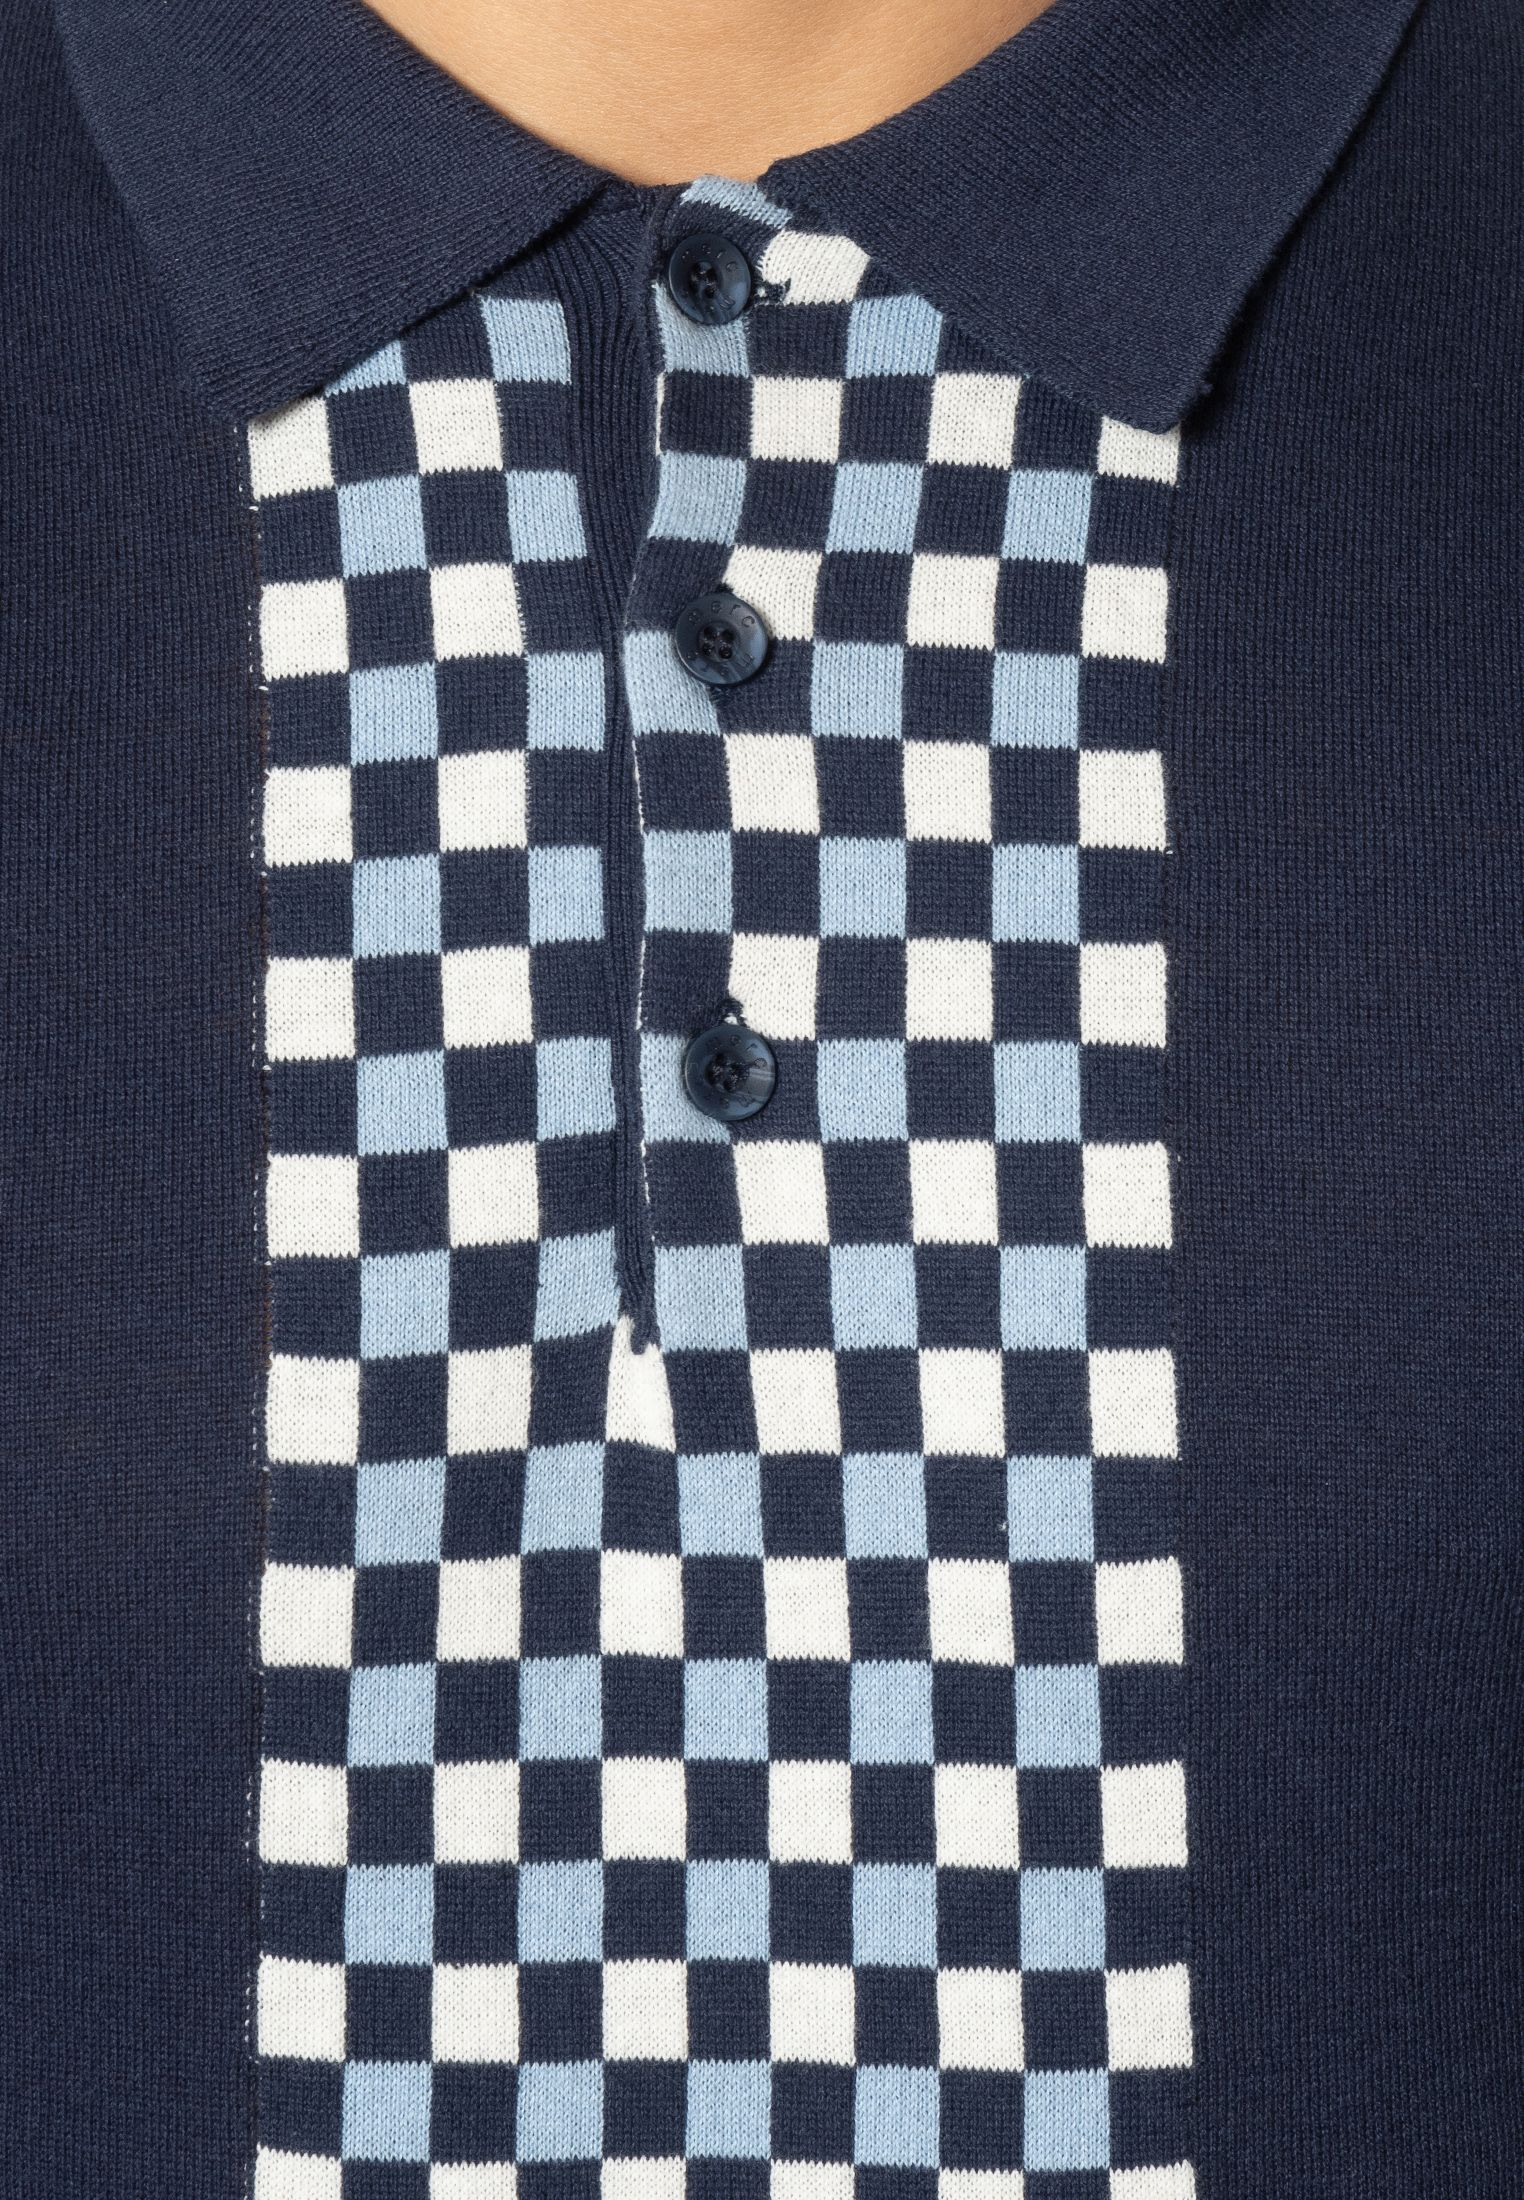 Jarvis Short Sleeve Knit Polo With Check Panel In Navy